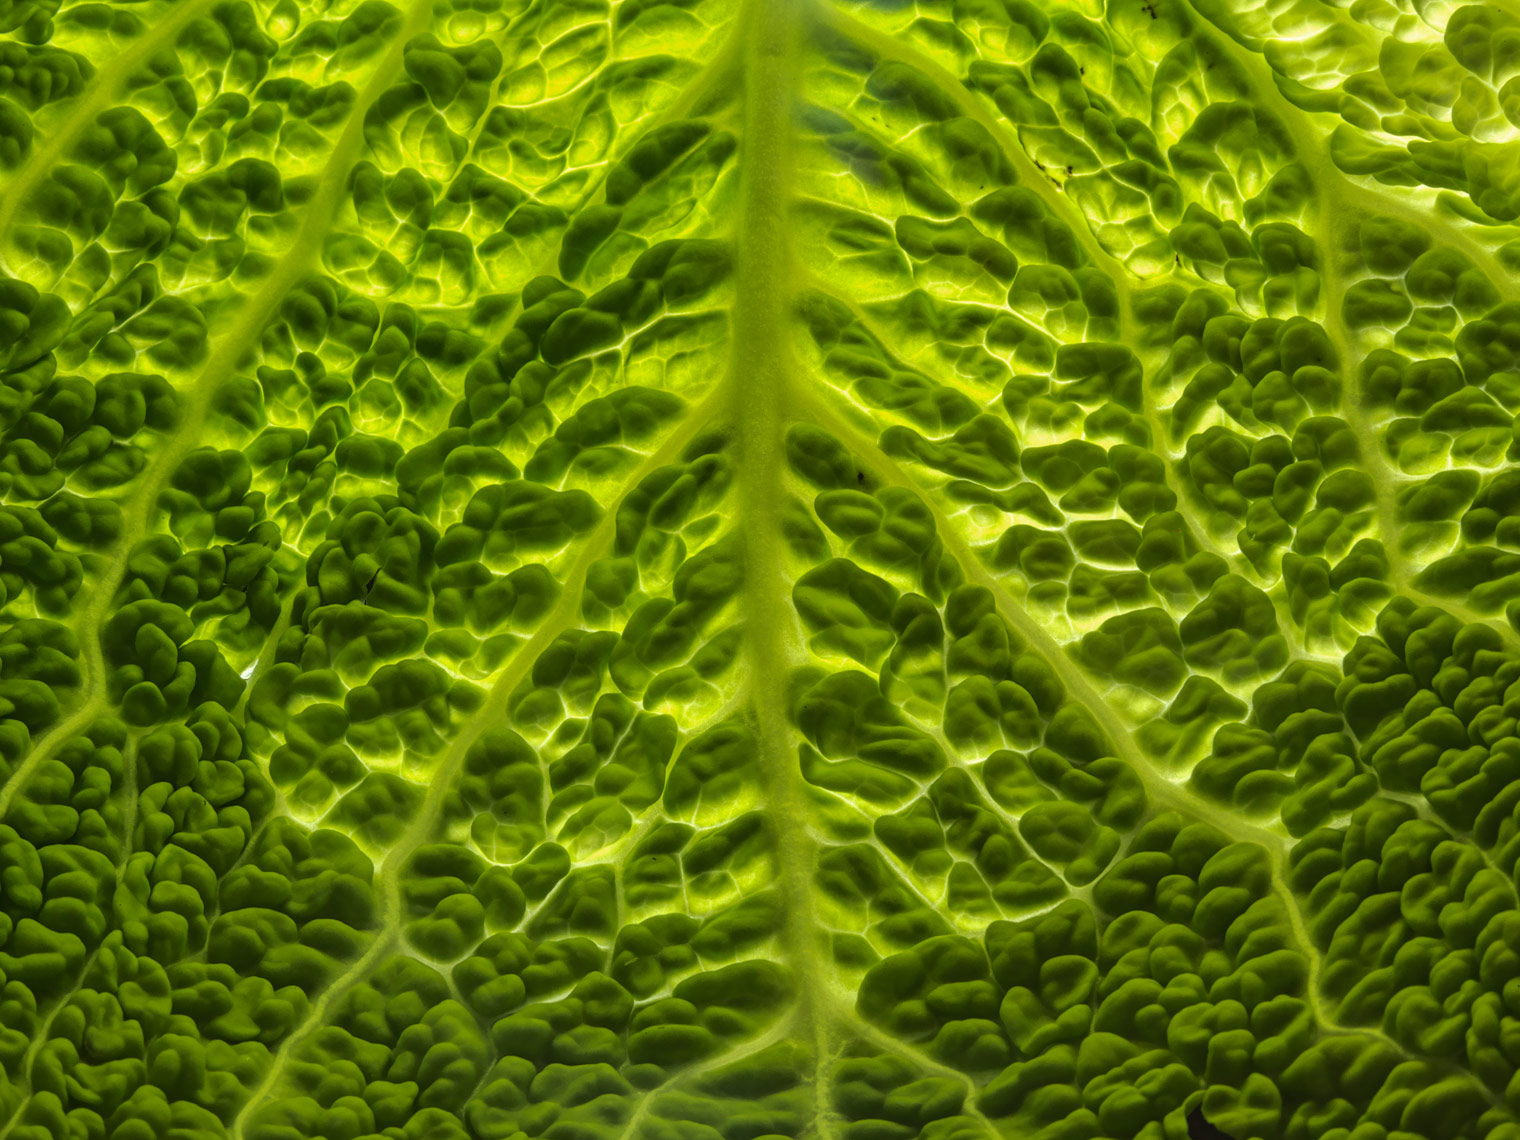 macro image of backlit leaf of green cabbage